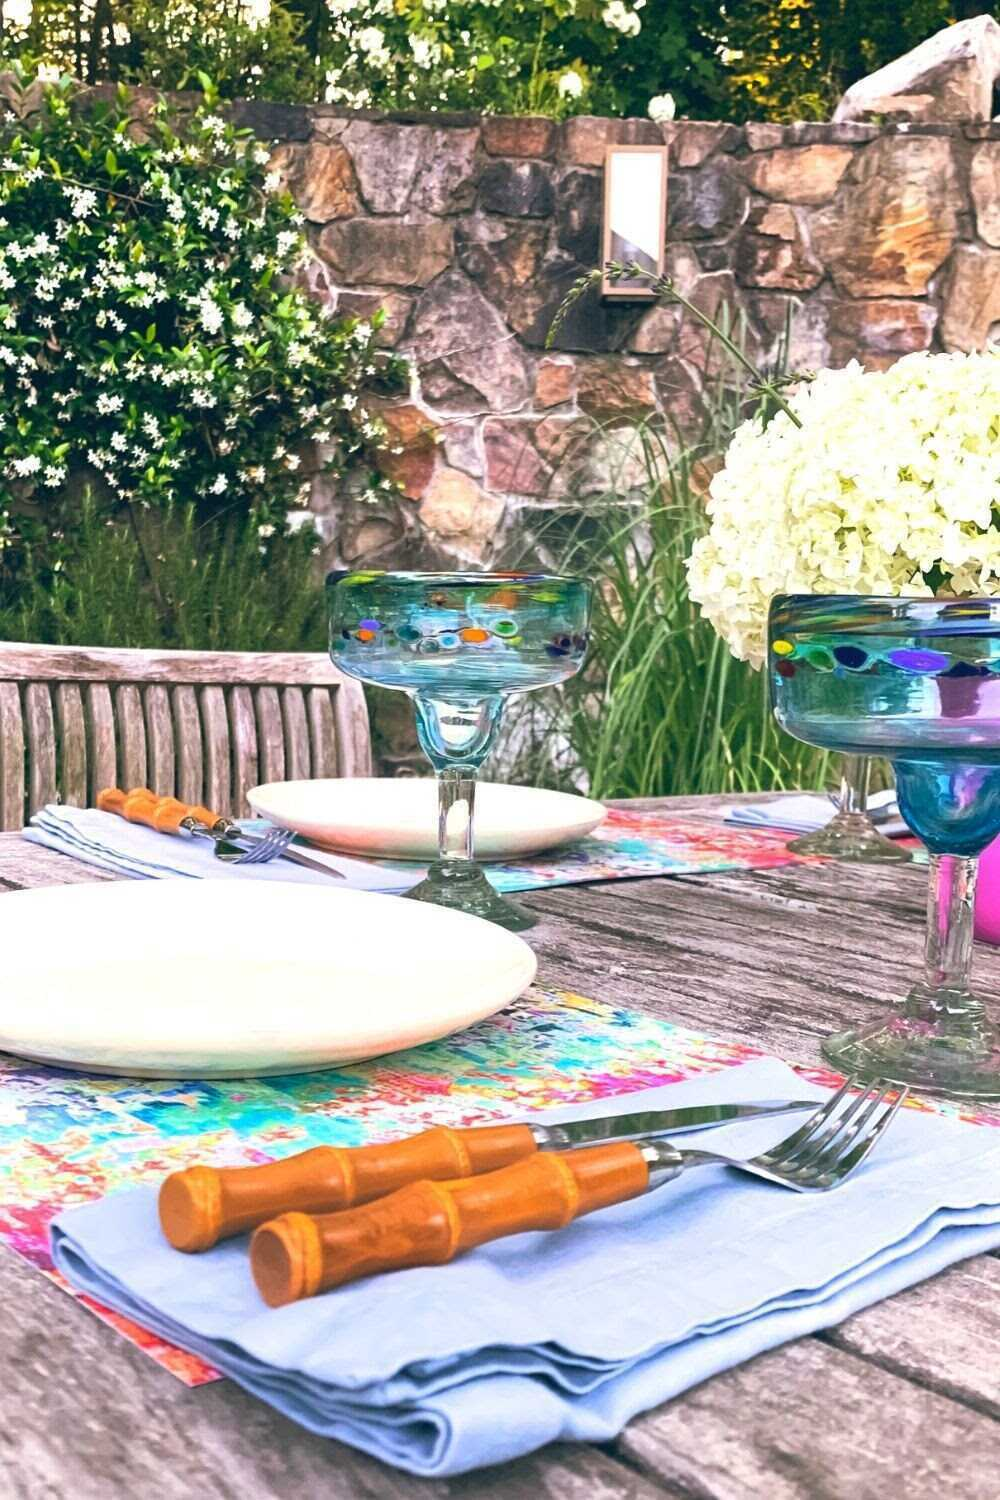 From al fresco mid-week meals to holiday barbecues and formal fêtes, summer brings endless opportunities for entertaining family and friends. Join SmithHönig co-founder Melanie Hönig as she sets the stage for summer dinner parties using vintage dishes and tassels, not-hassles.